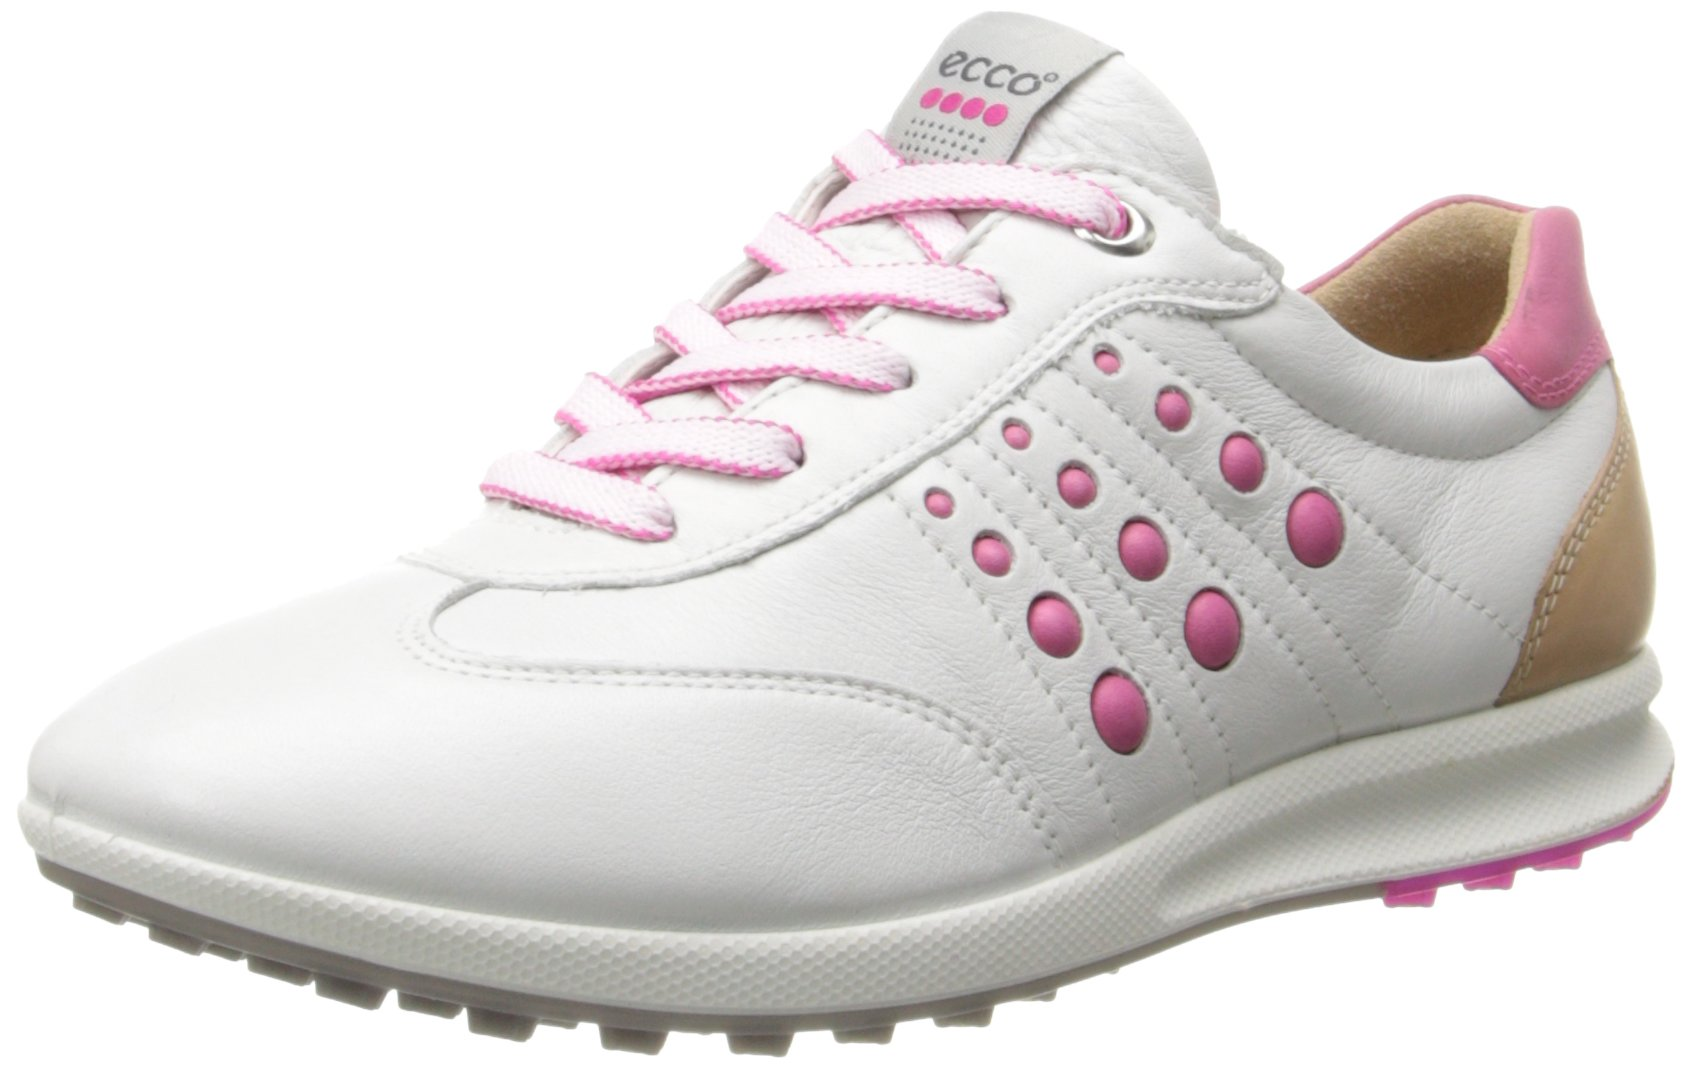 ECCO Women's Street EVO One Luxe Golf Shoe,White/Candy,41 EU/10-10.5 M US